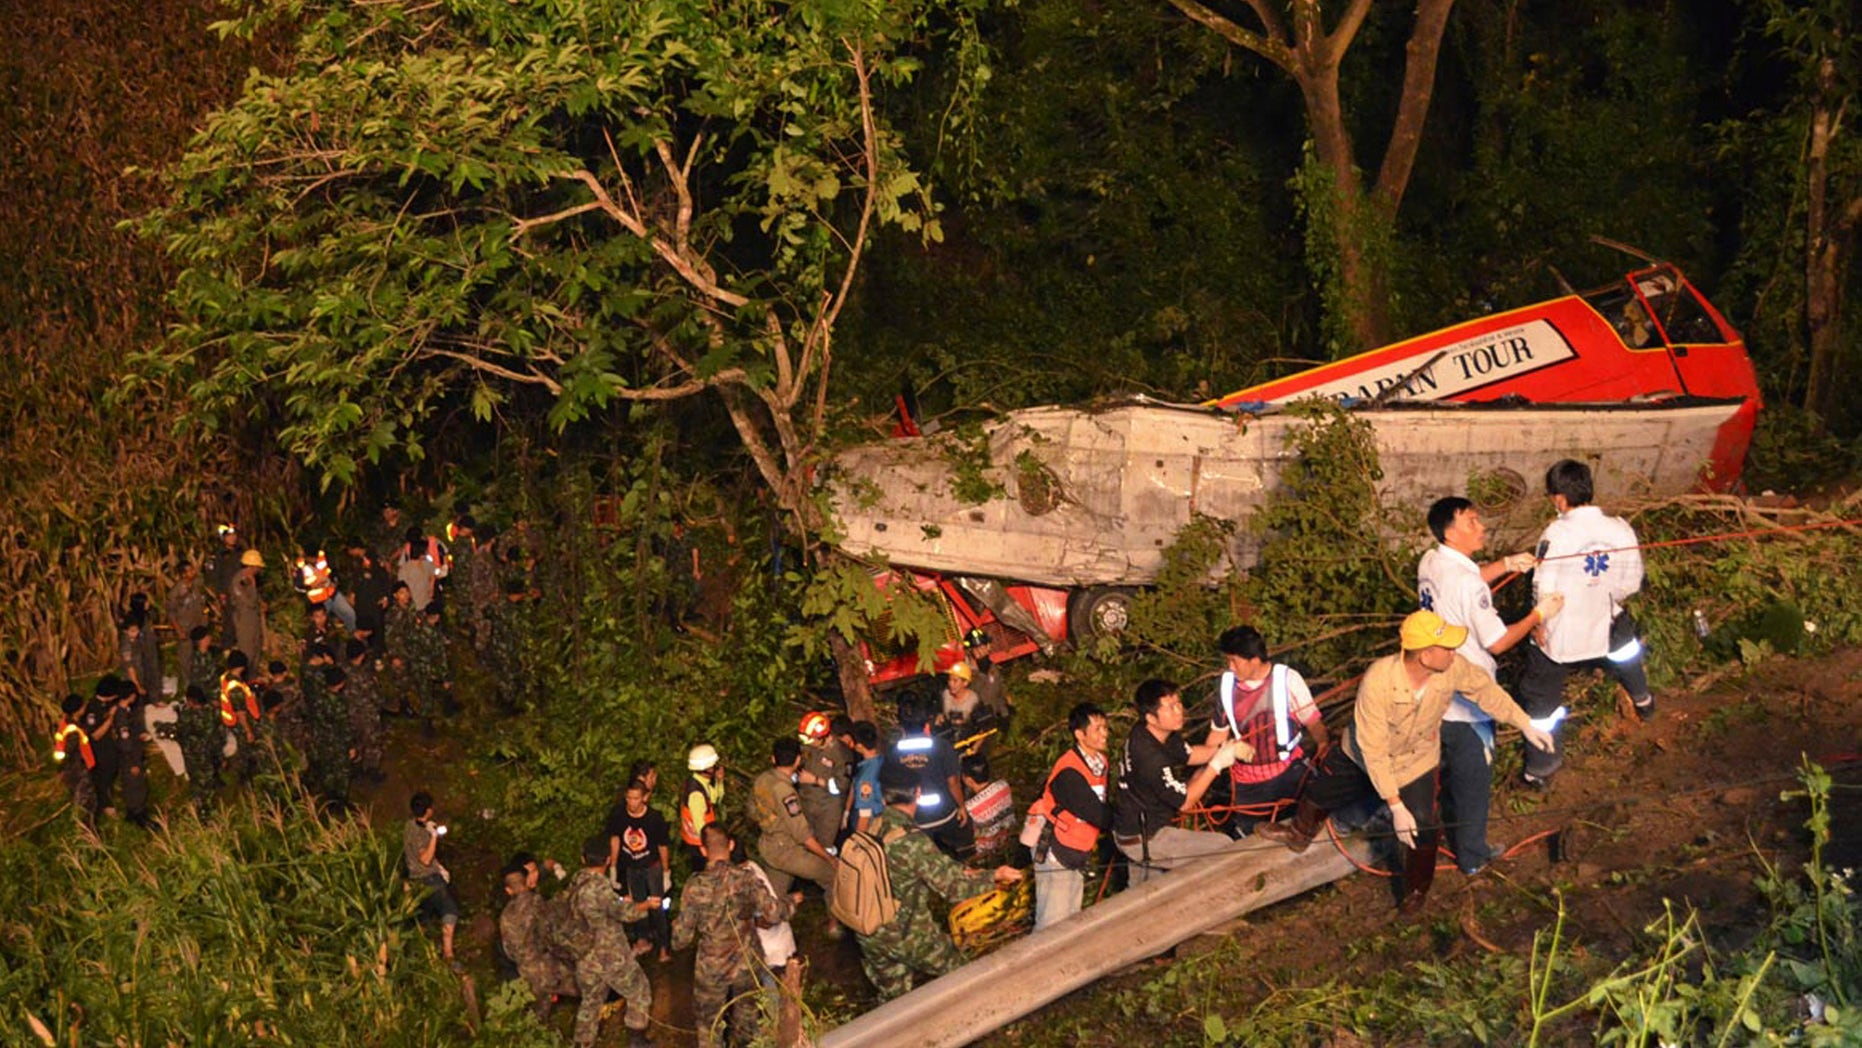 In this photo taken Wednesday, Oct. 23, 2013, Thai rescuers search for passengers of a bus that fell about 30 meters (98 feet) into the ravine on a curvy rural road in Lampang province, Thailand. The bus carrying worshippers home from a temple at the end of Buddhist Lent plunged into a ravine in northern Thailand, killing 22 passengers, police said Thursday. (AP Photo/Daily News) THAILAND OUT